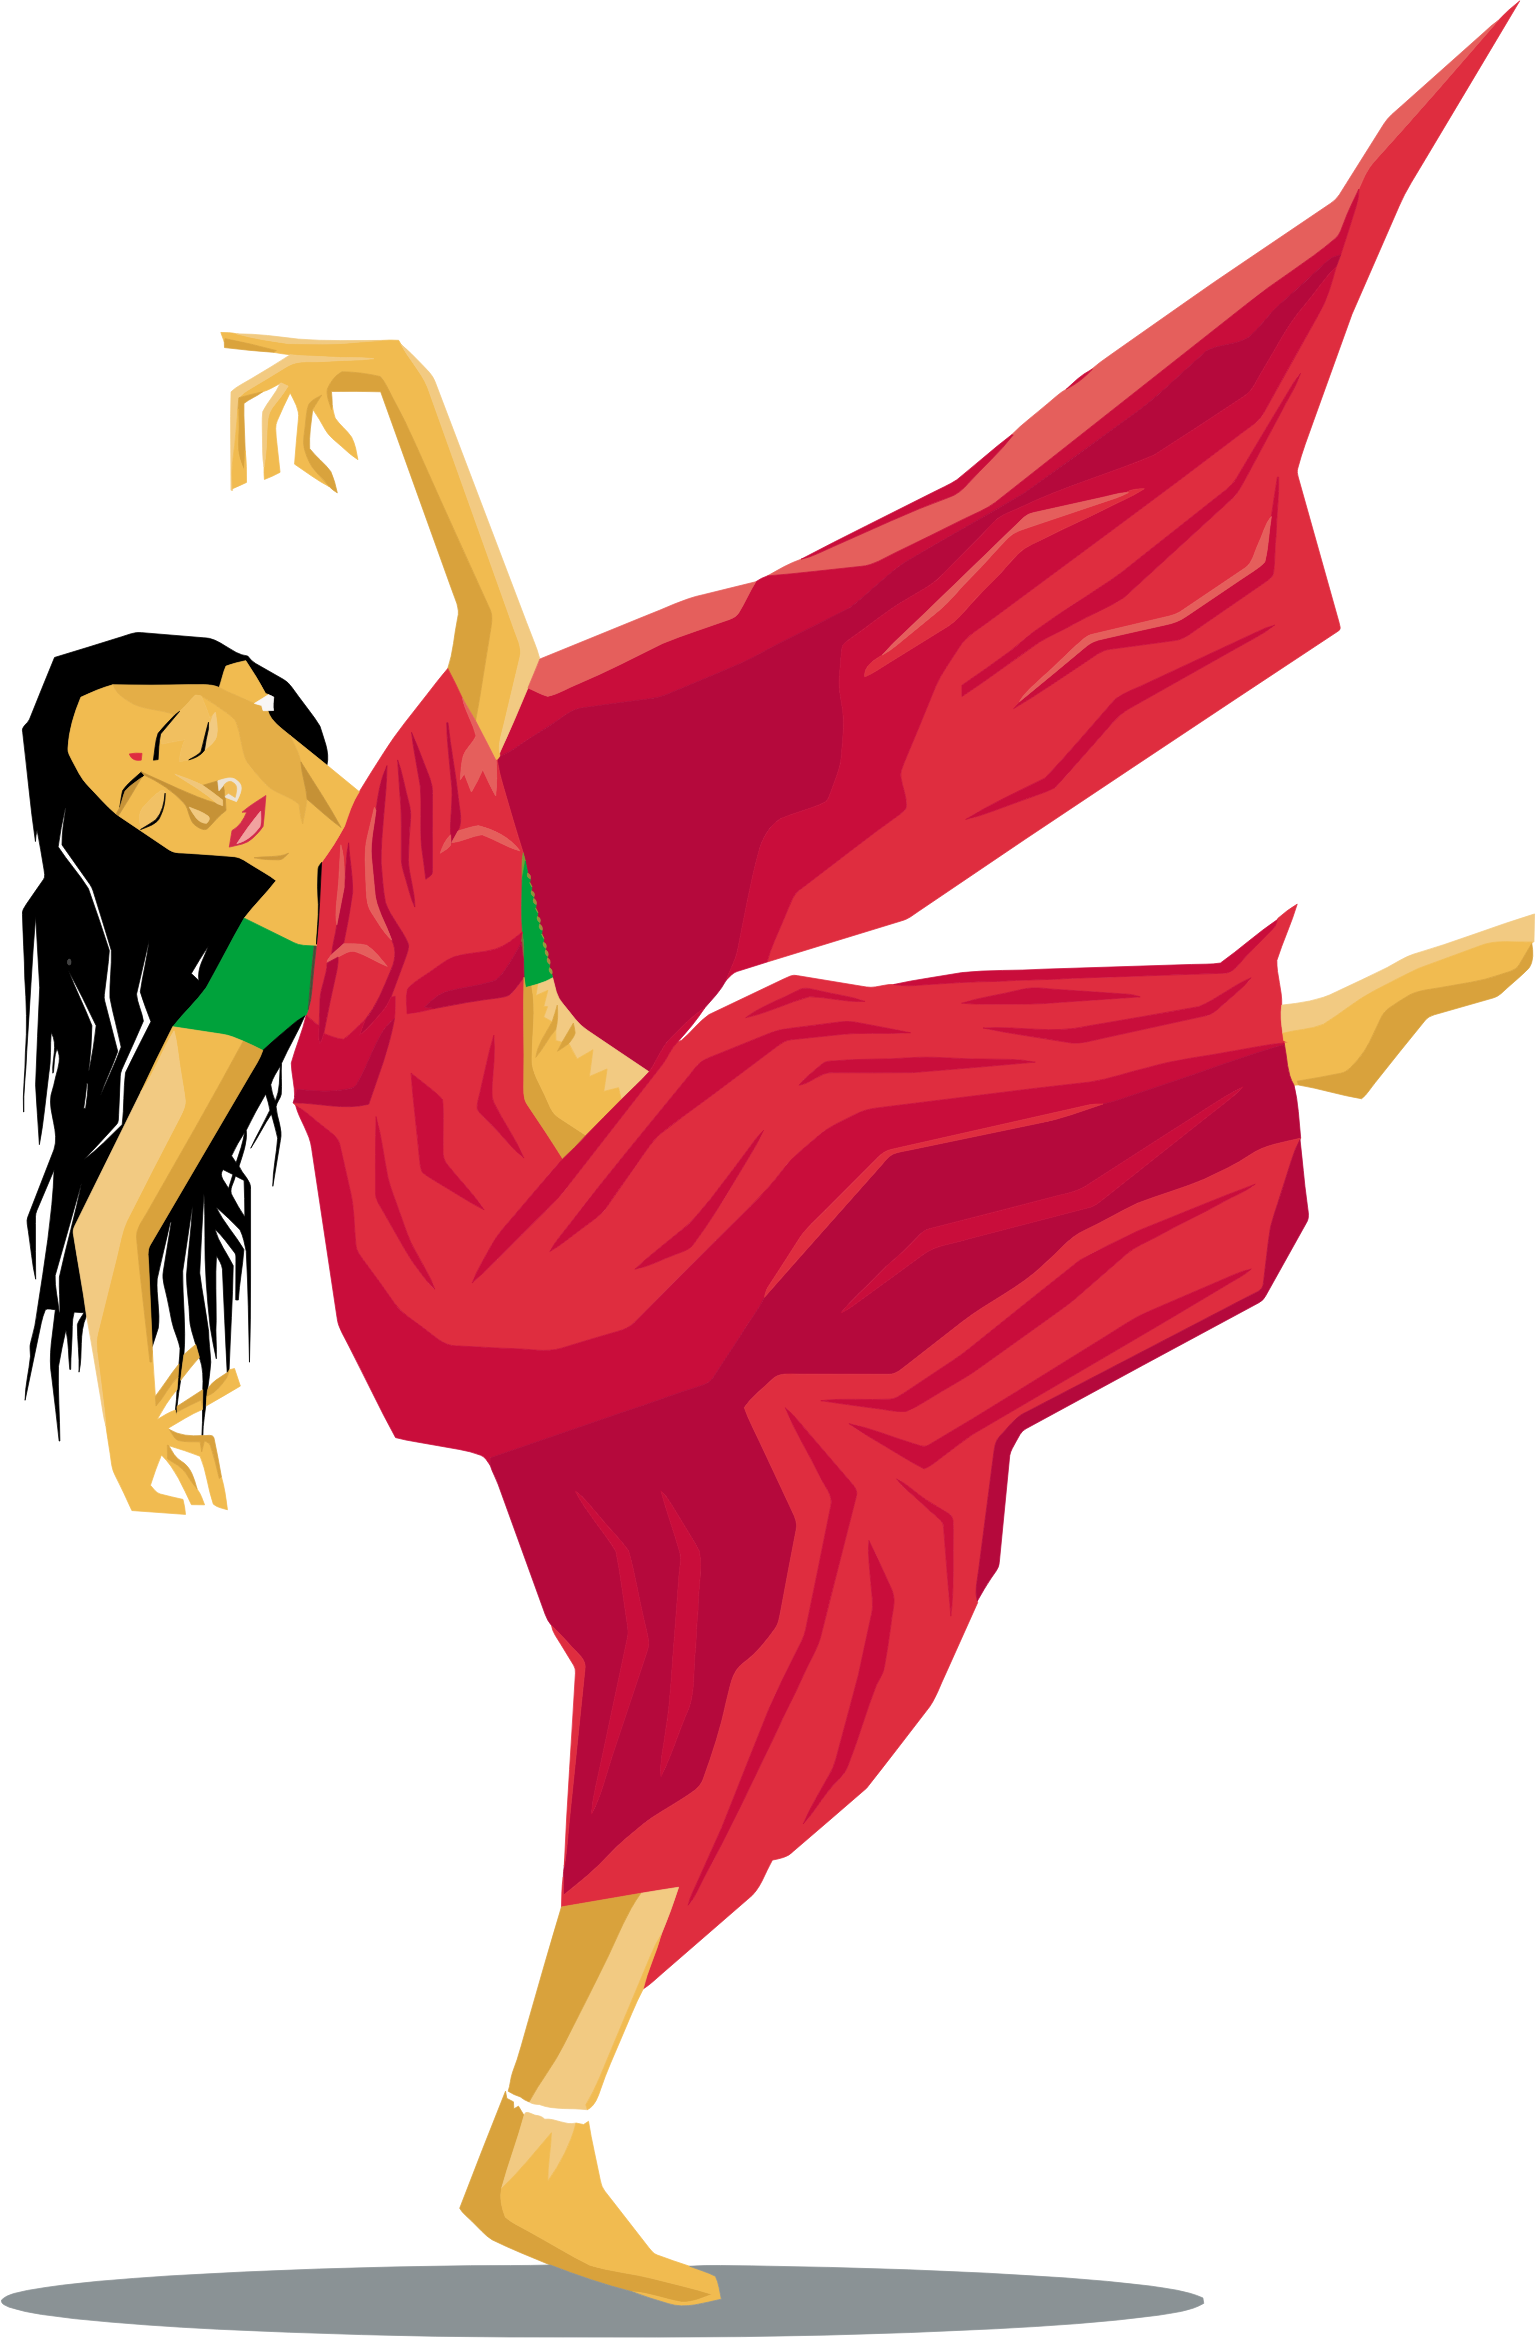 graphic royalty free download Indian Dance Clipart at GetDrawings